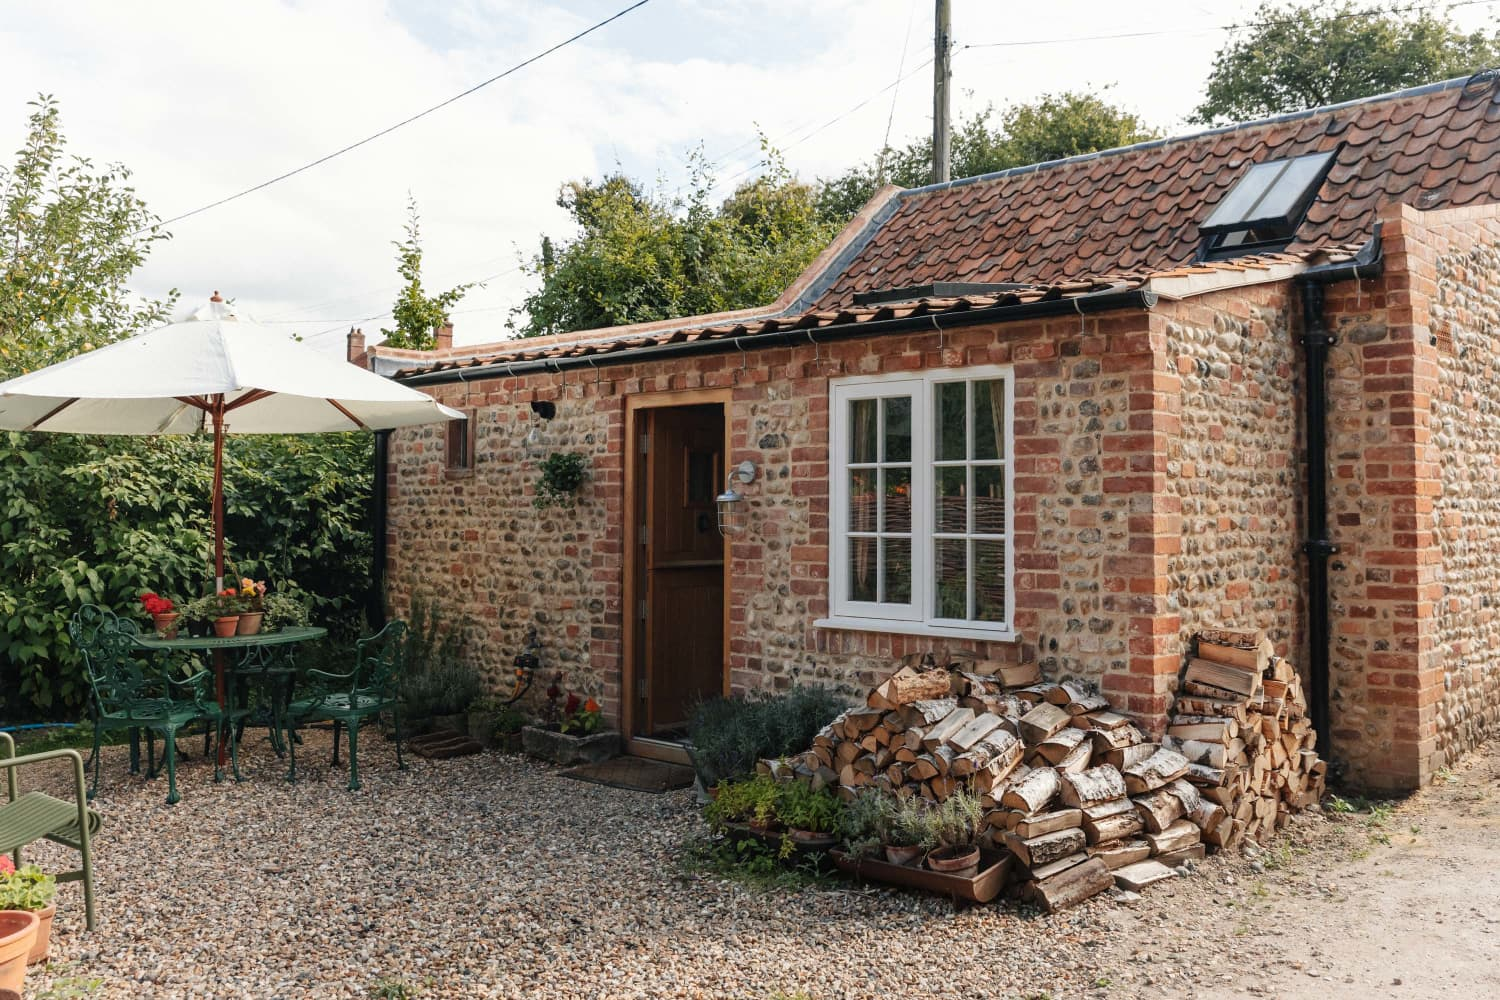 This 500-Square-Foot English Stone Cottage Is Honestly the Cutest Home Ever